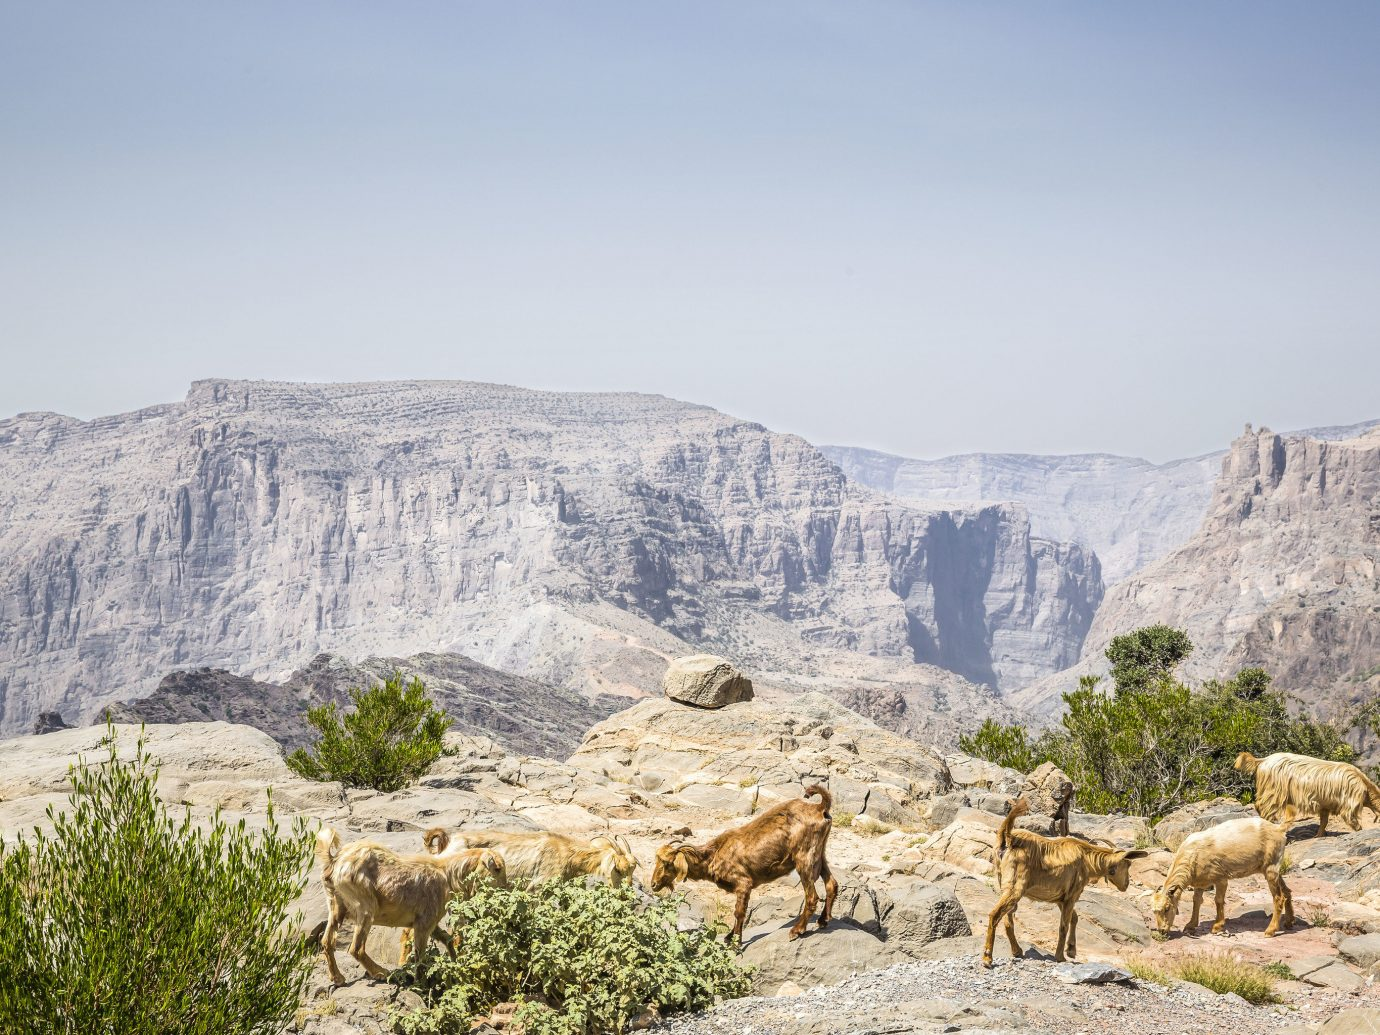 Hotels mountain outdoor sky cow mountainous landforms animal landform mammal wilderness herd canyon wadi mountain range valley cattle badlands landscape rock plateau group Adventure geology walking hillside